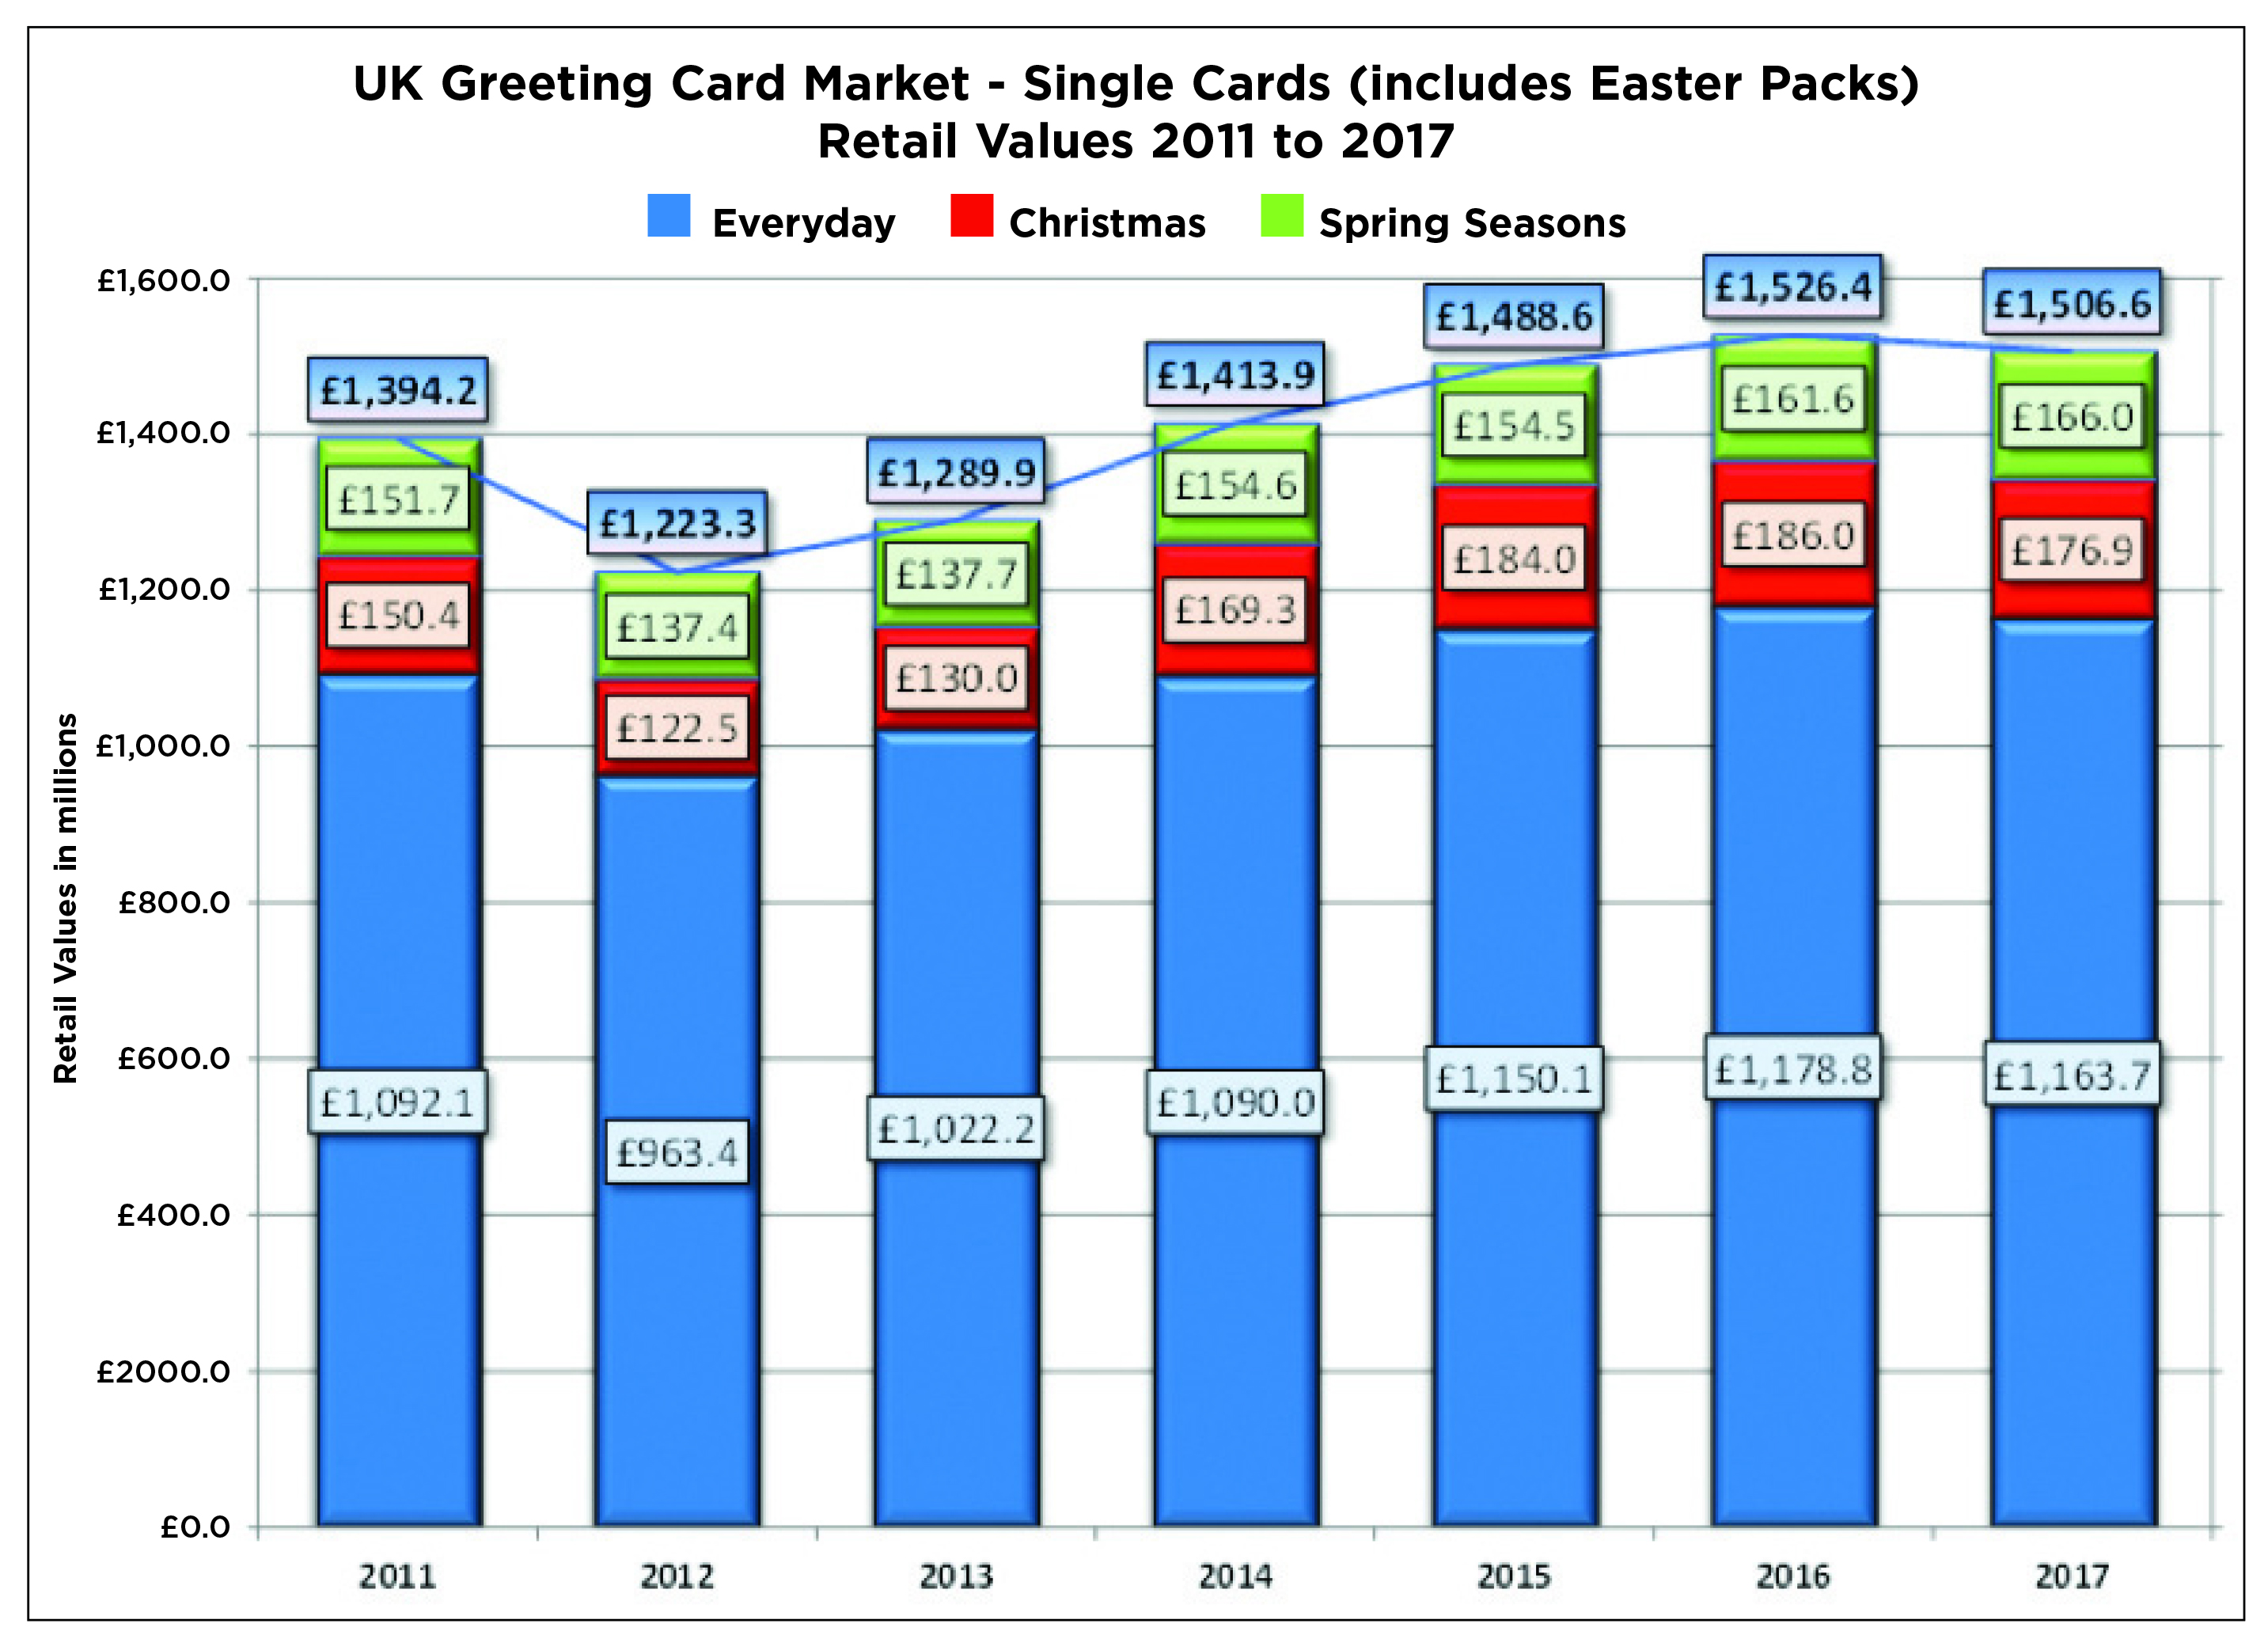 17 billion spent on greeting cards confirms gca market report pg above the big picture is pretty good m4hsunfo